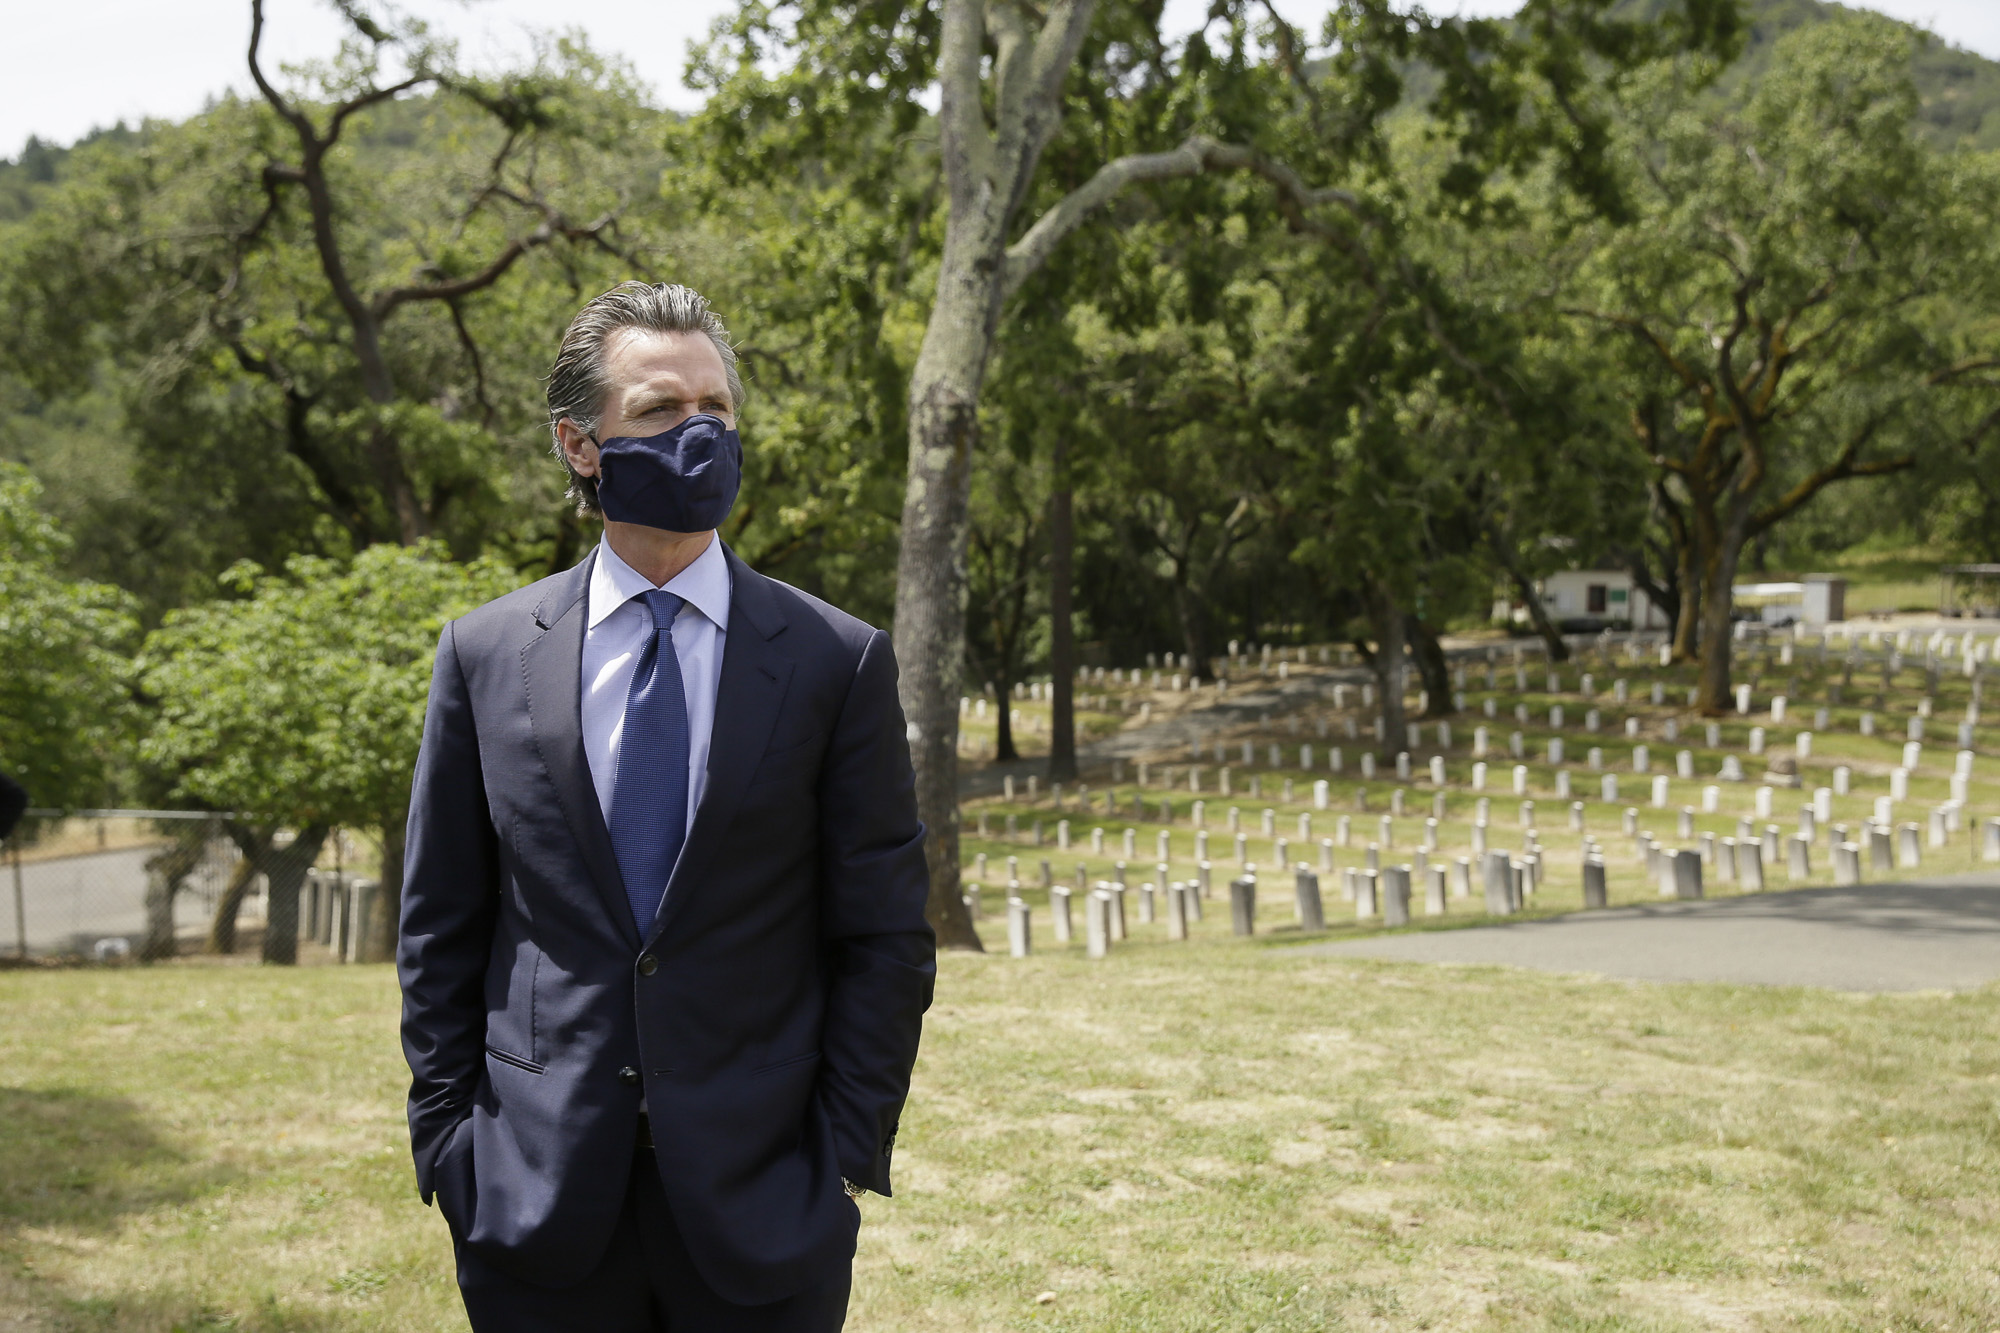 California Gov. Gavin Newsom looks out at rows of graves before a wreath laying ceremony in the cemetery at the Veterans Home of California May 22, 2020, in Yountville. Photo by Eric Risberg, AP Photo/Pool